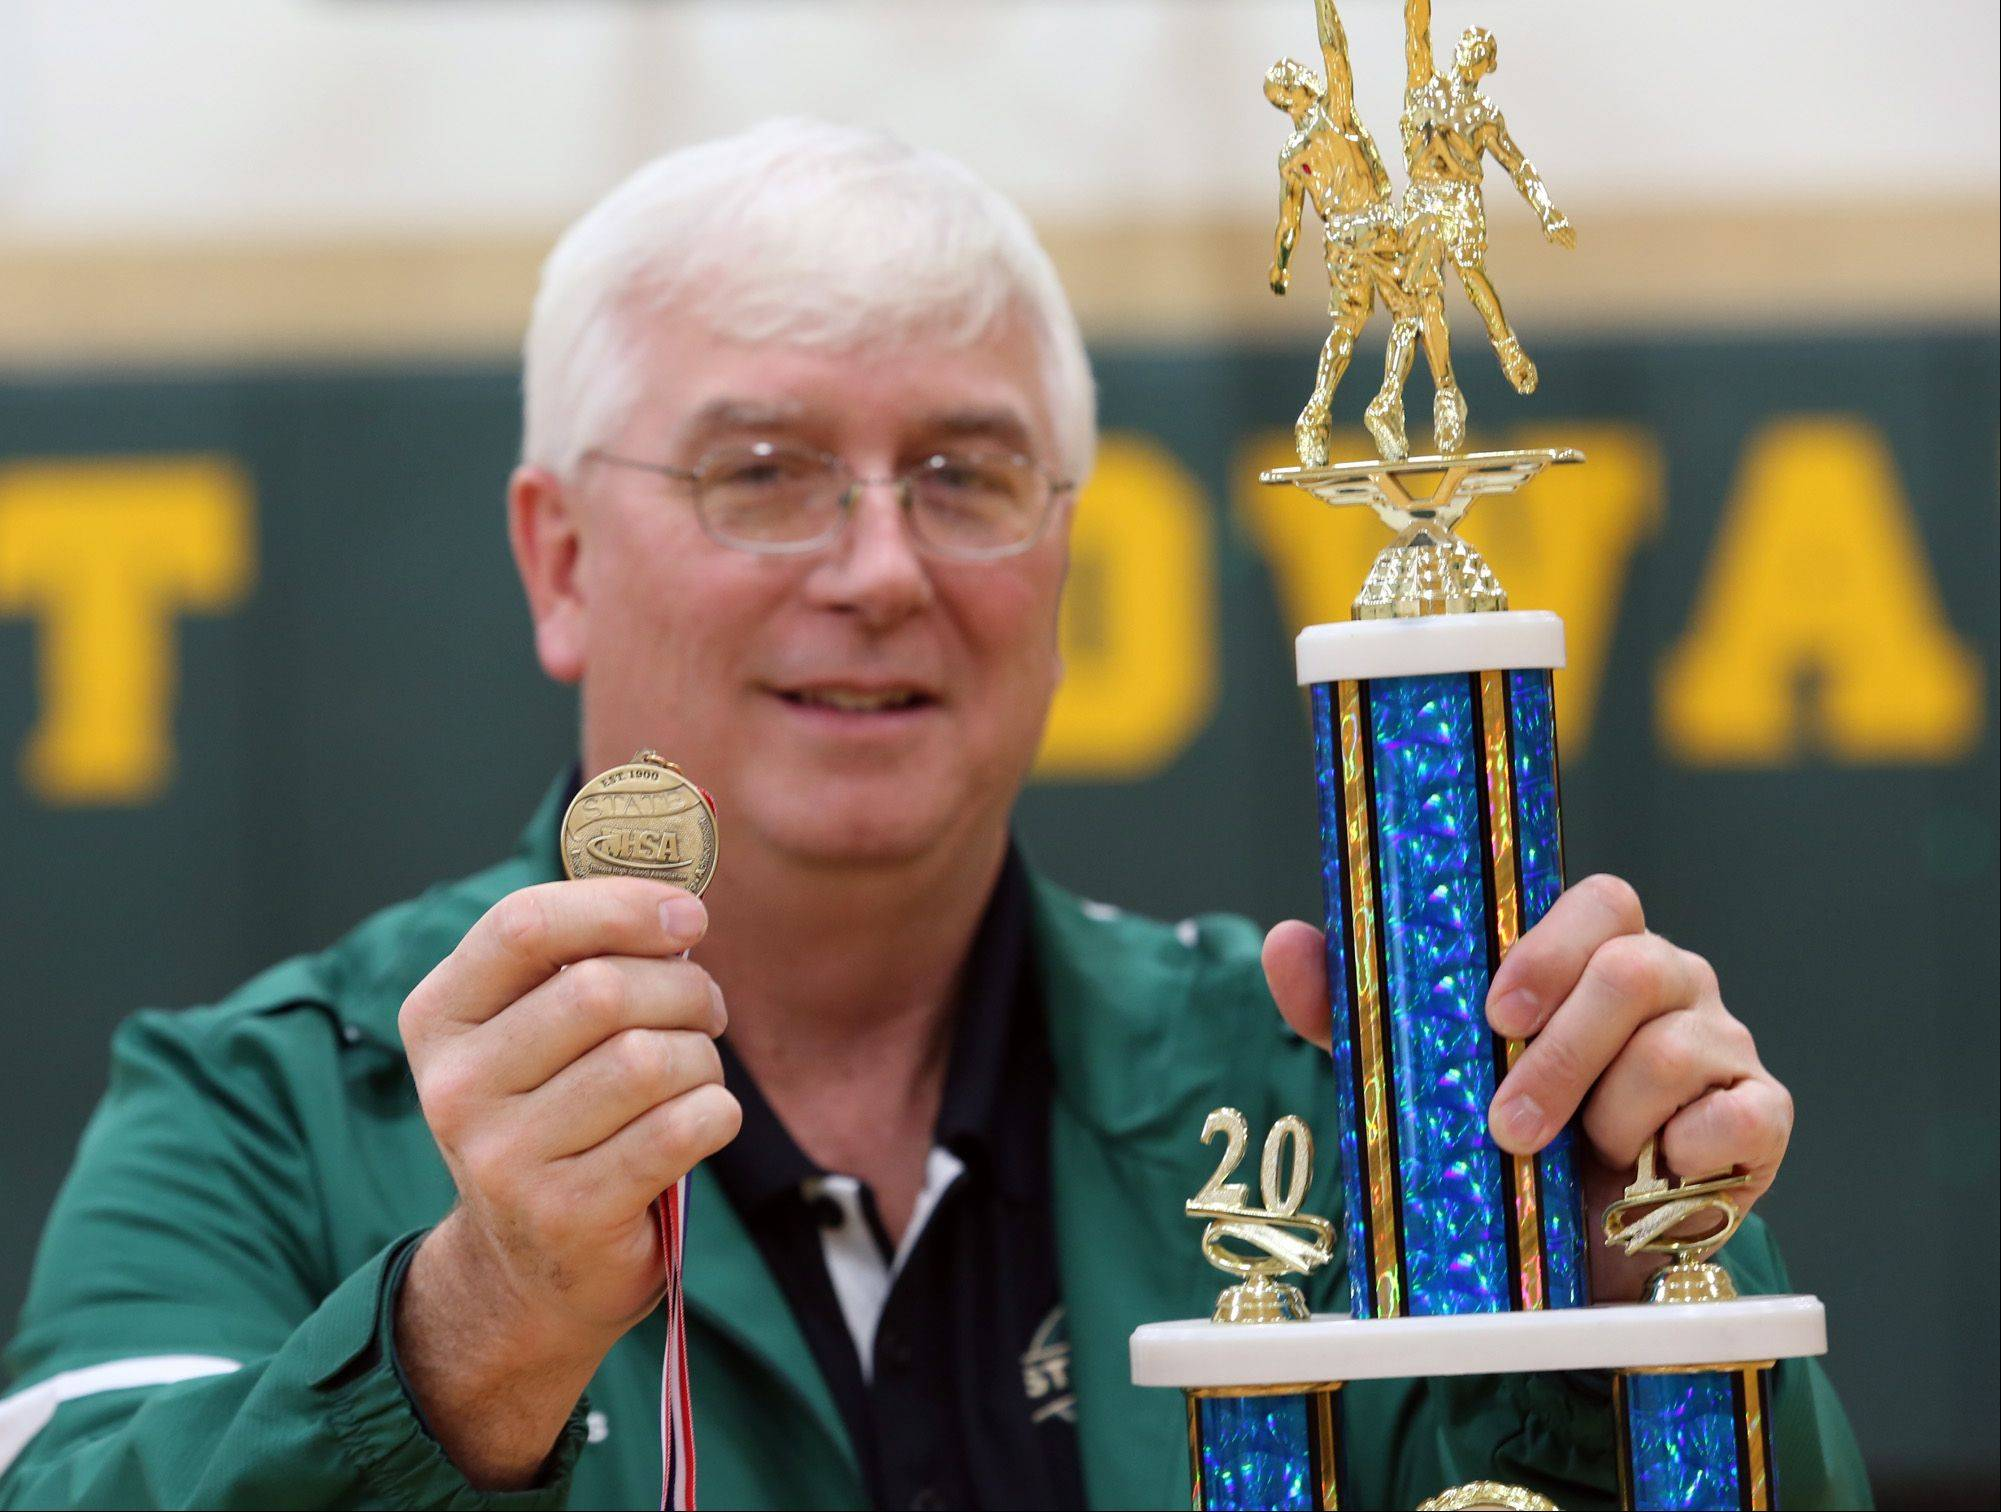 P.J. White, boys basketball coach and athletic director at St. Edward and an assistant football coach at Batavia, displays the state football championship medal from Saturday's Class 6A title game, and the championship trophy the St. Edward boys basketball team won Saturday night at Westminster Christian.